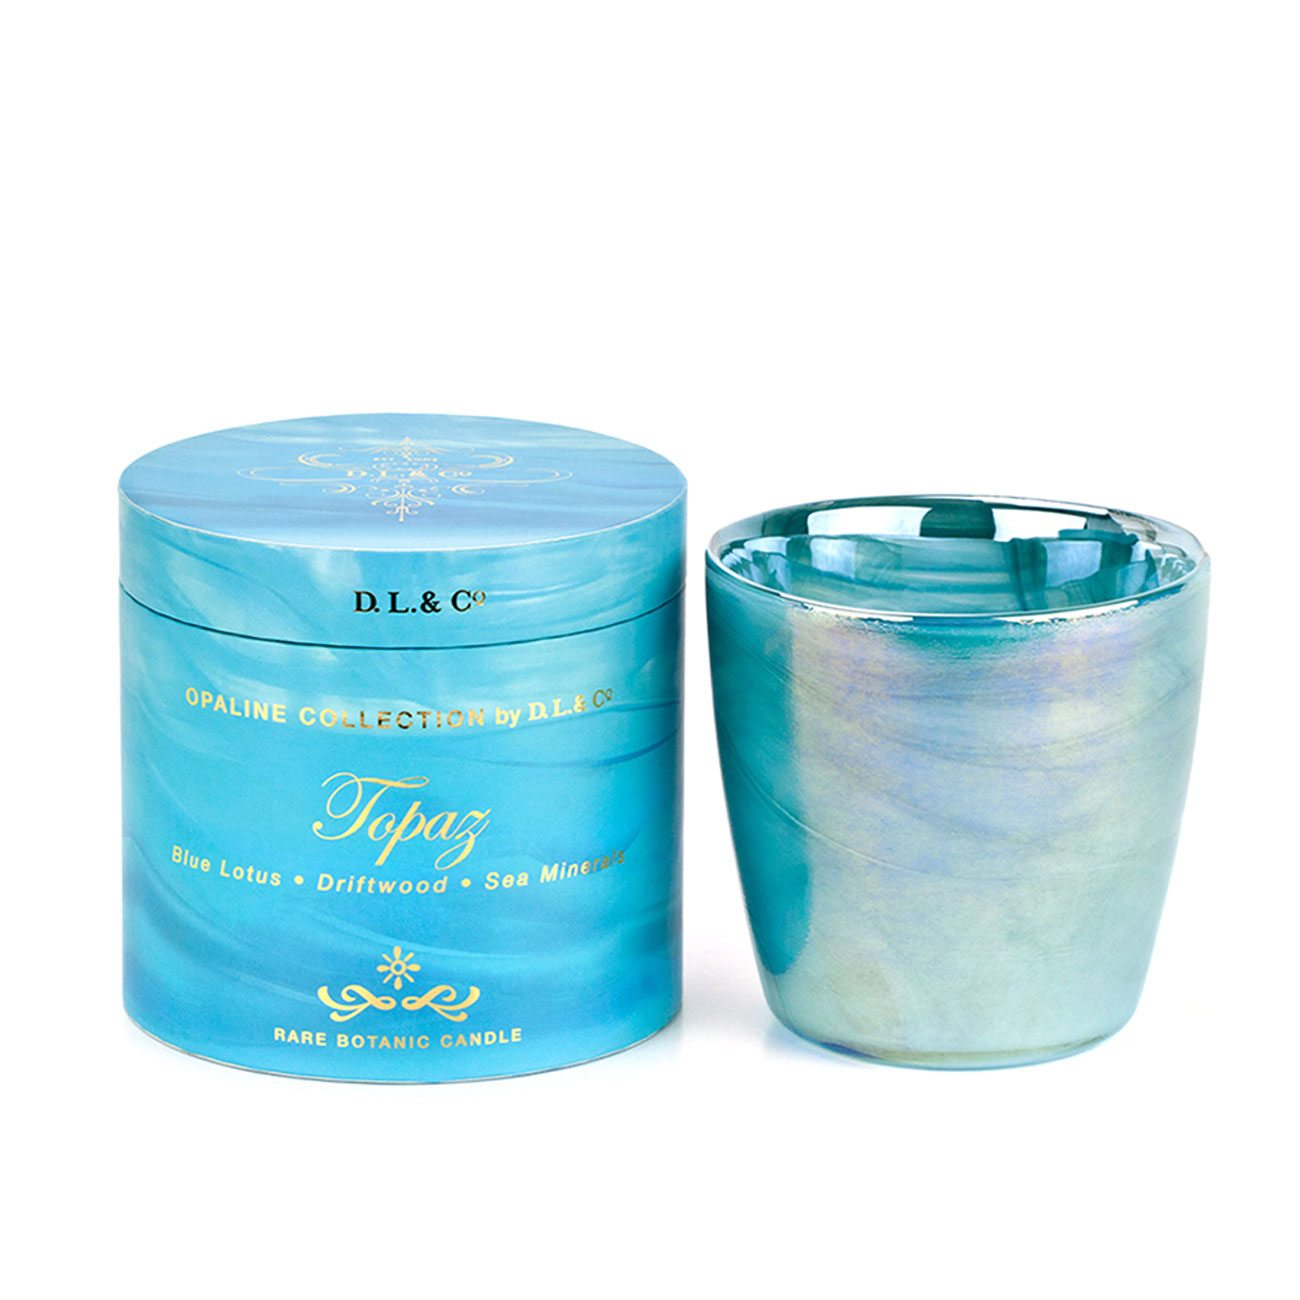 D.L. & Co.  Opaline Collection Topaz Candle, 17-Ounce